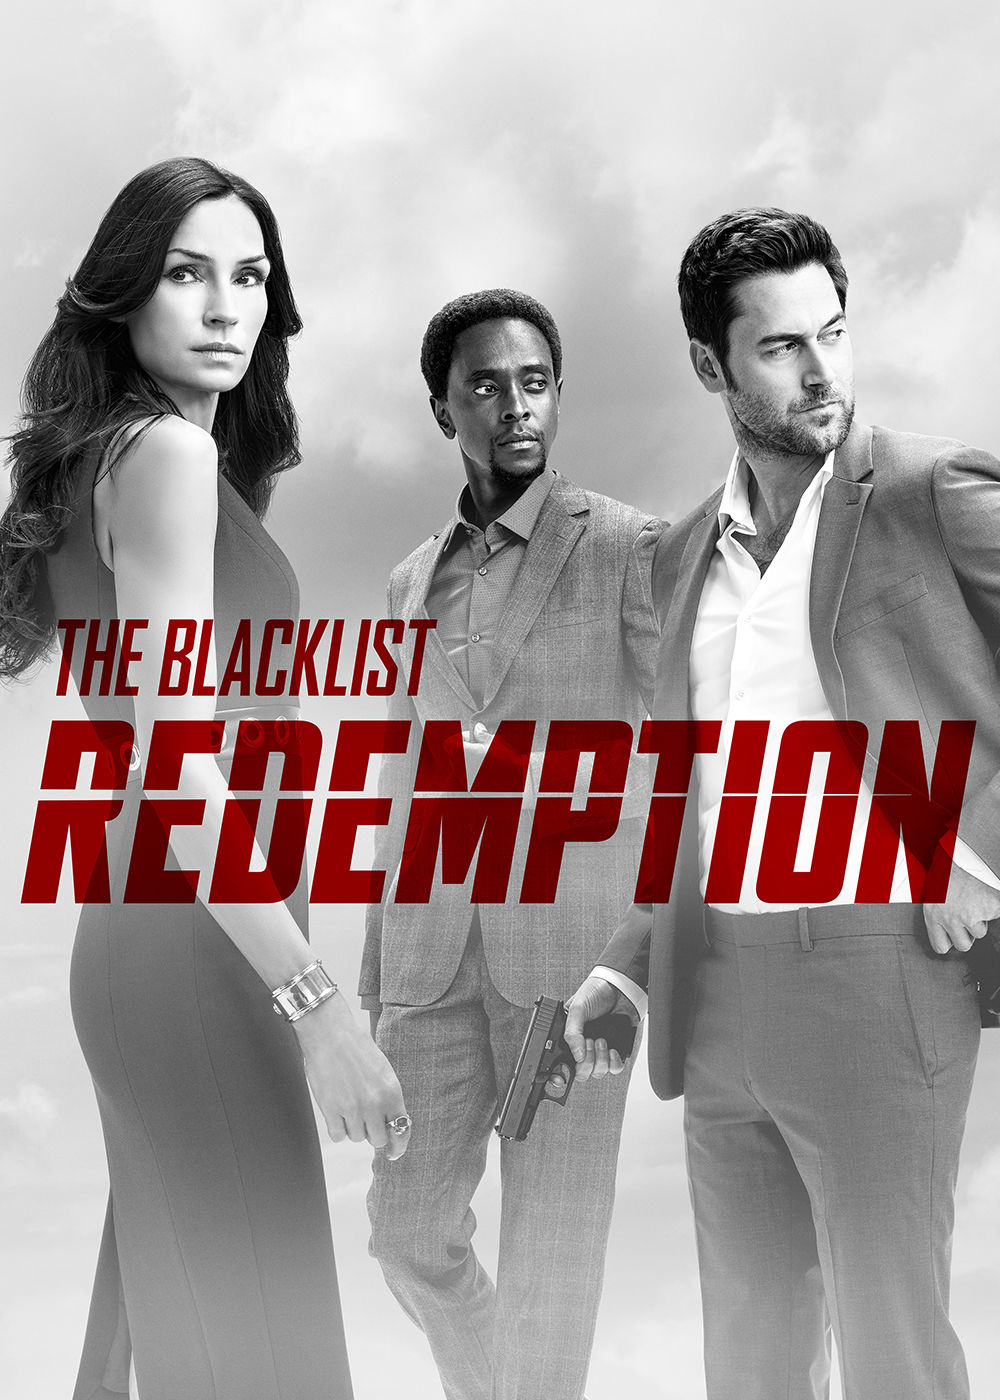 the blacklist s01e03 720p resolution